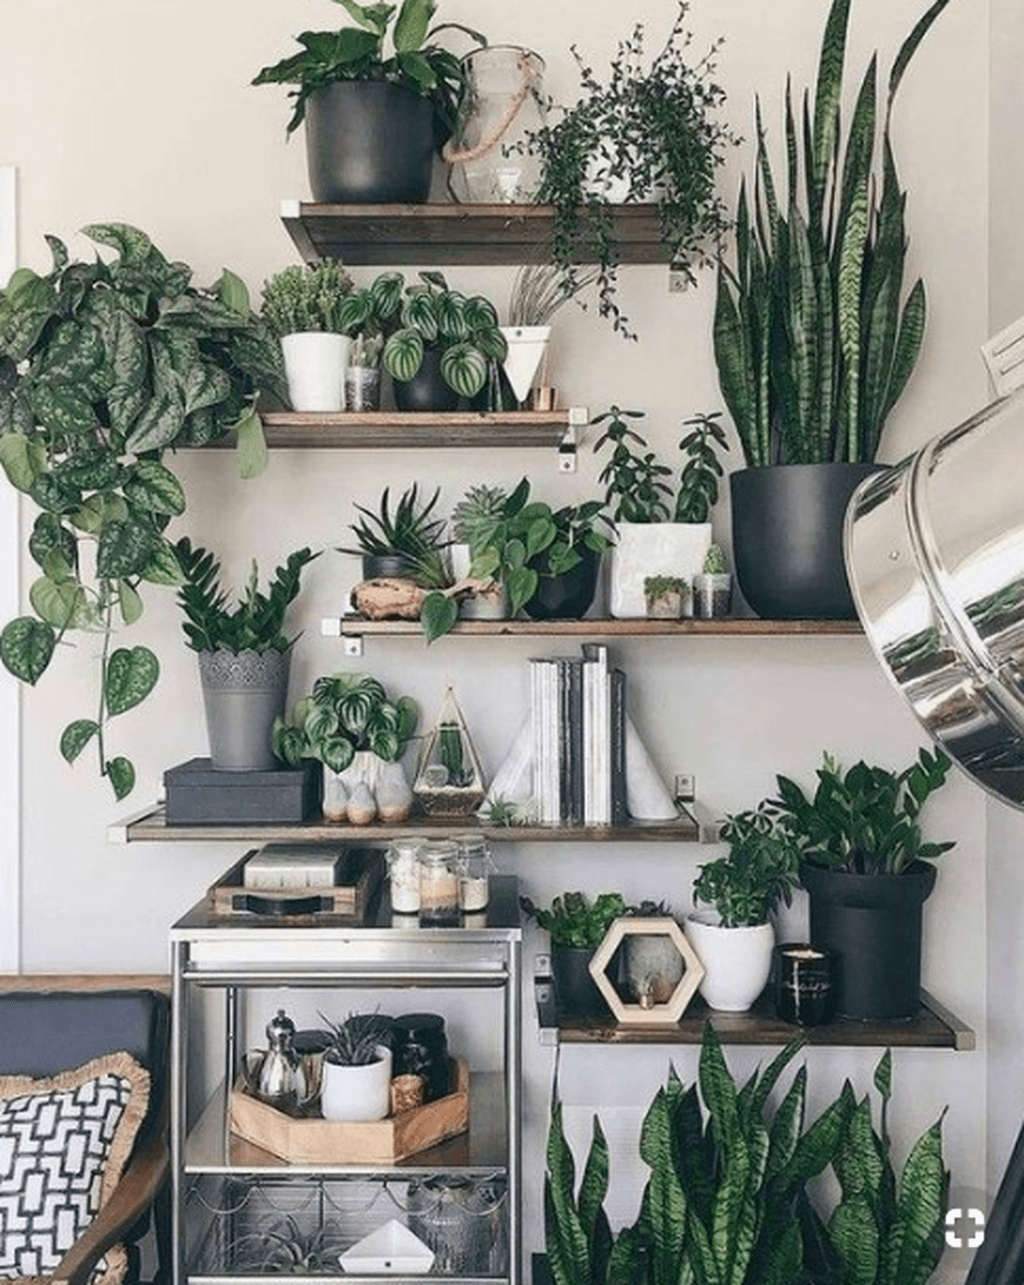 32 The Best Indoor Living Wall Decor Ideas For Your Interior Design Living Room Plants Plant Wall Decor Plant Decor Indoor